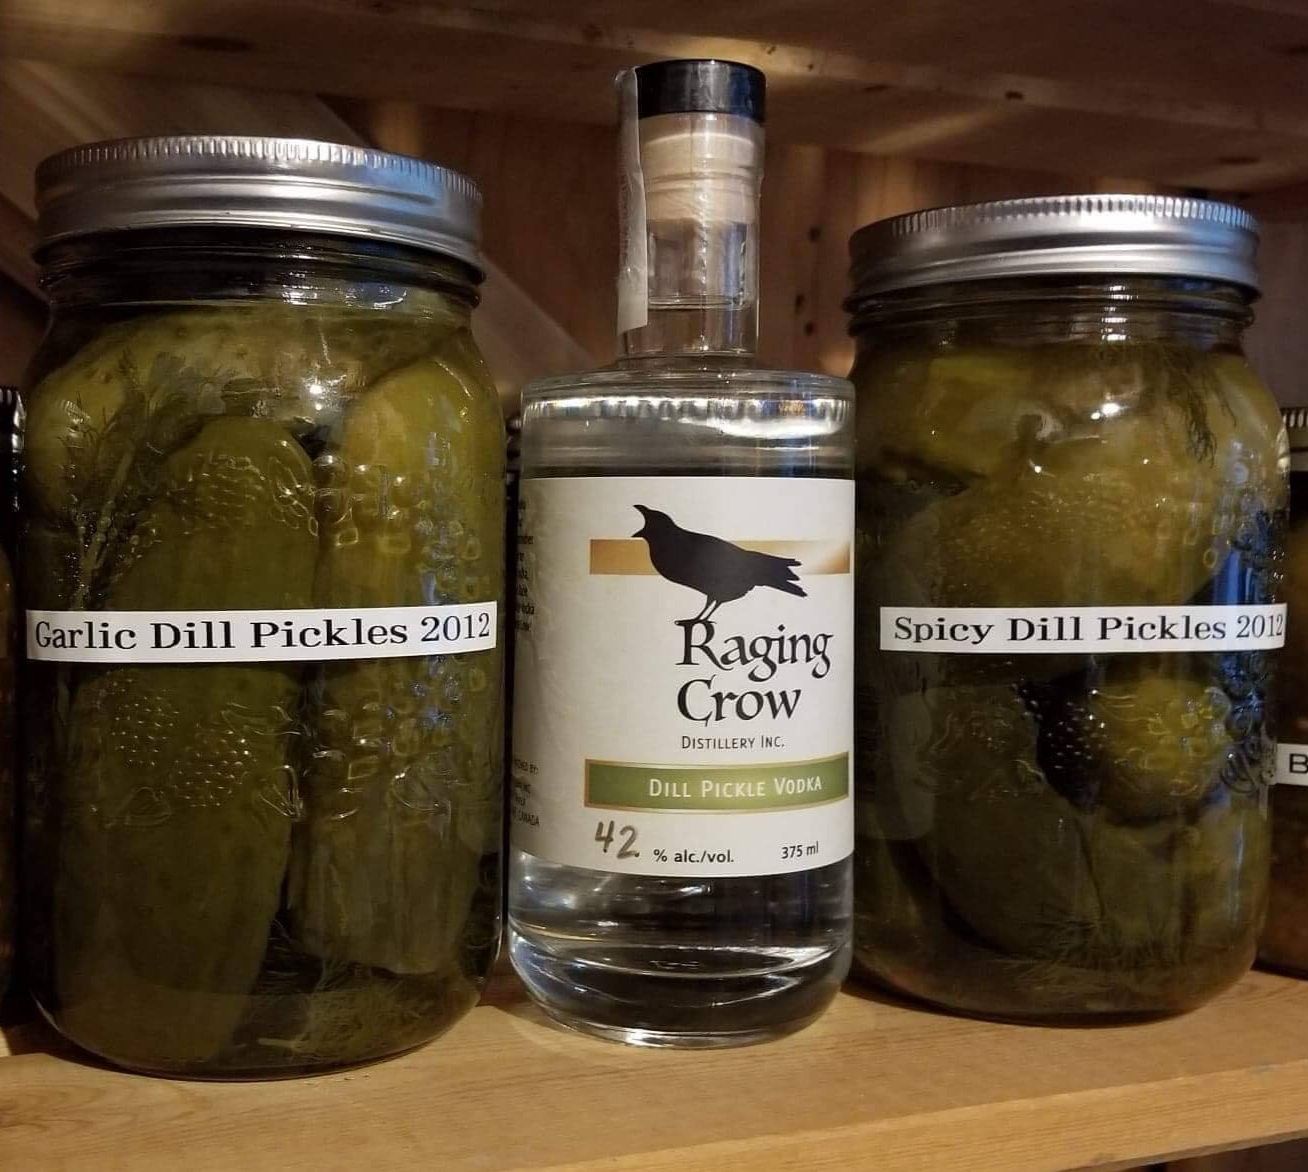 Raging Crow Dill Pickle Caesar - 1 375ml bottle of Raging Crow Dill Pickle Vodka1 2.54 litre bottle of Extra Spicy Mott's ClamatoCombine in a punch bowl - instant party!